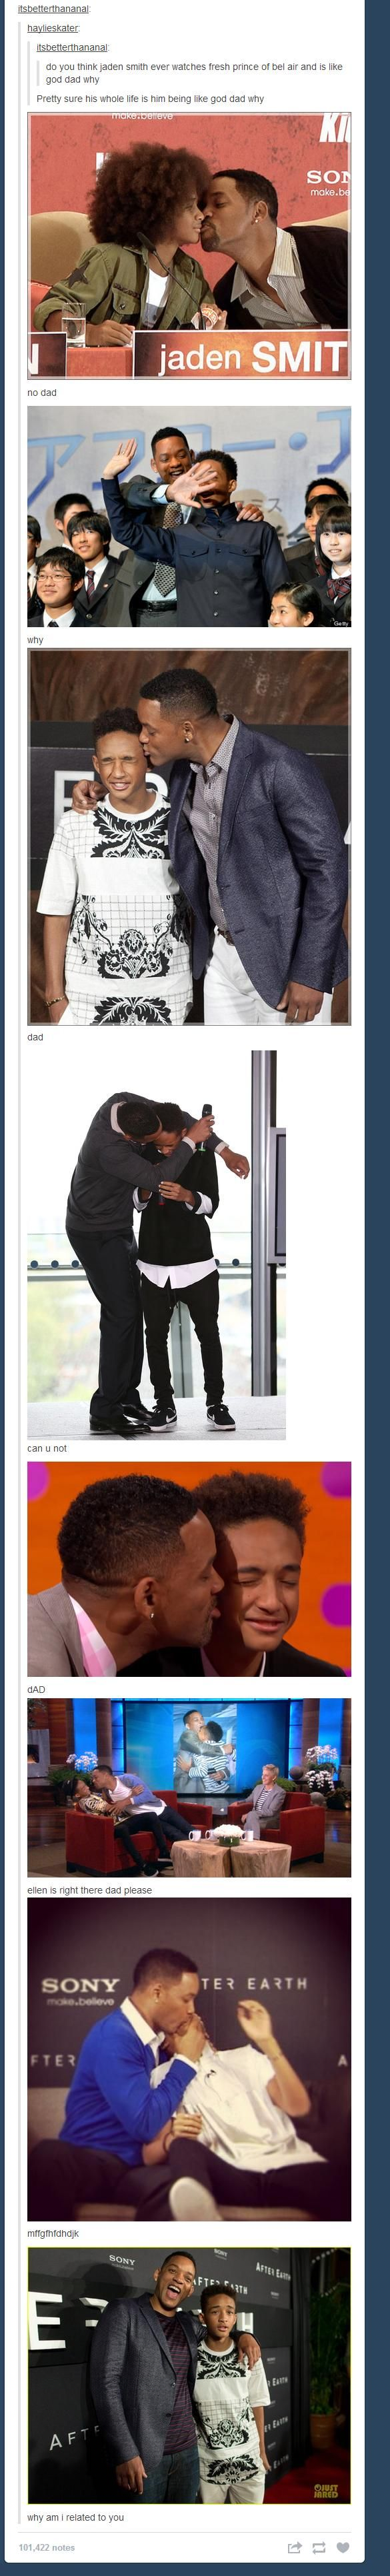 Will Smith is probably my favorite celebrity dad